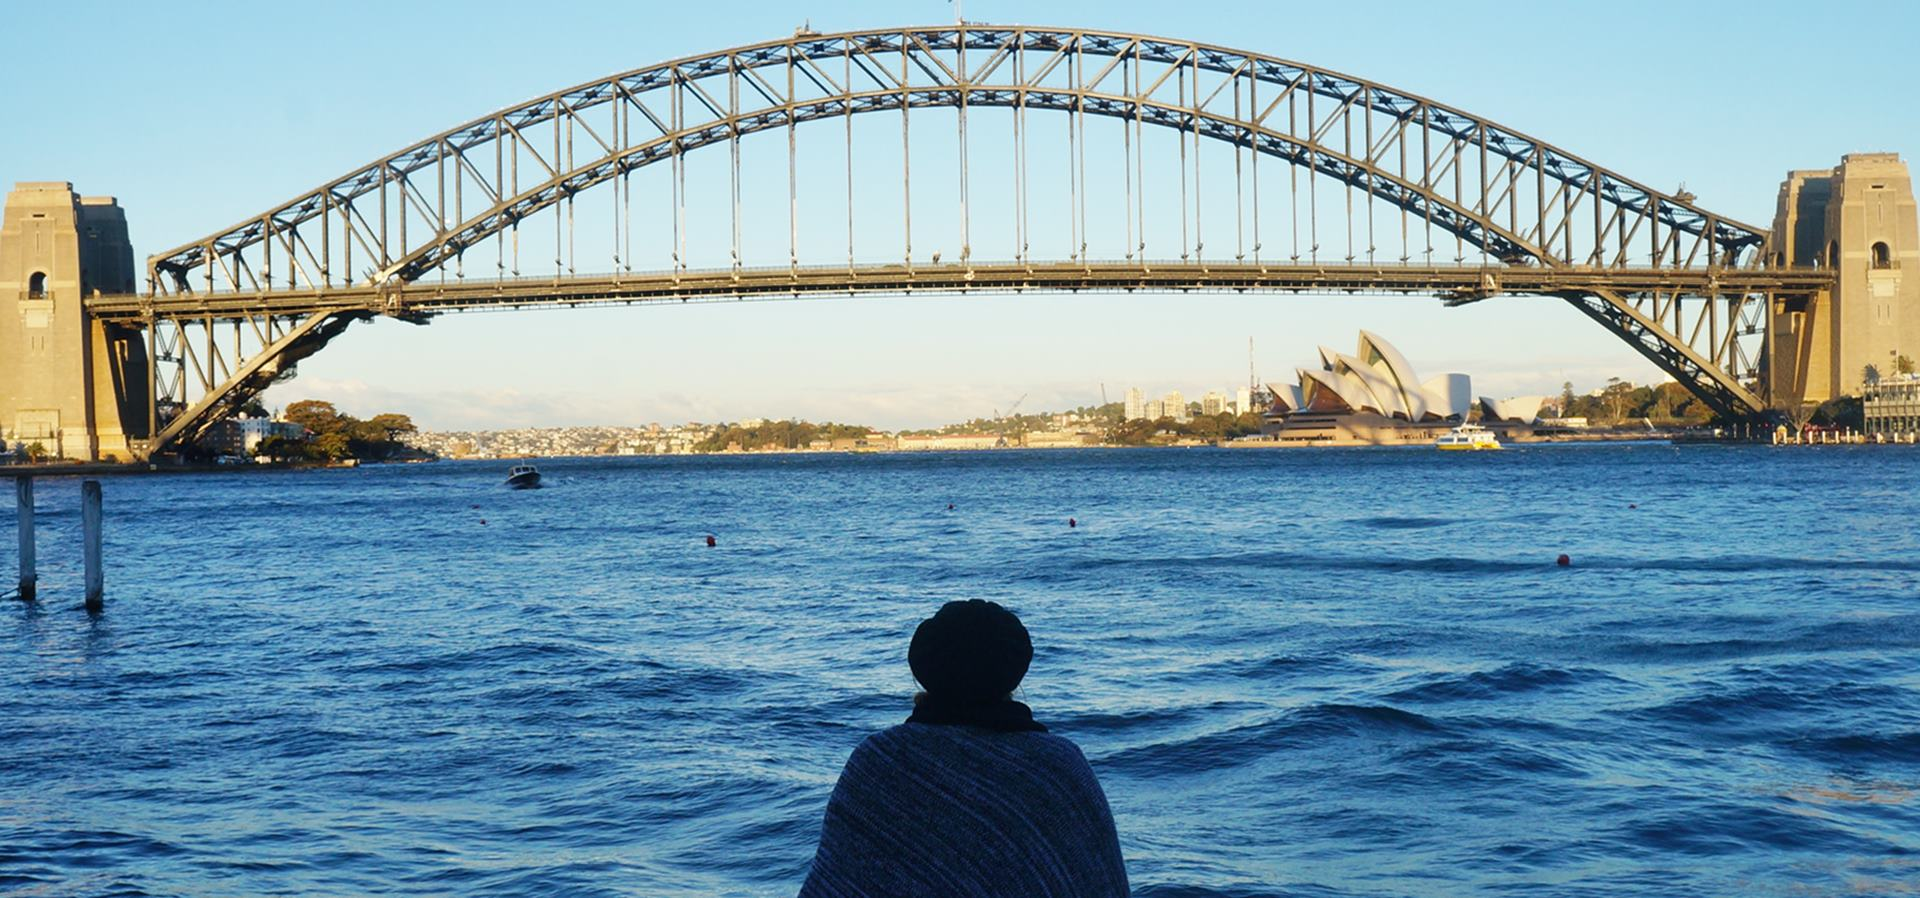 sydney harbour bridge free high definition lovely pics facebook cover page wallpaper download